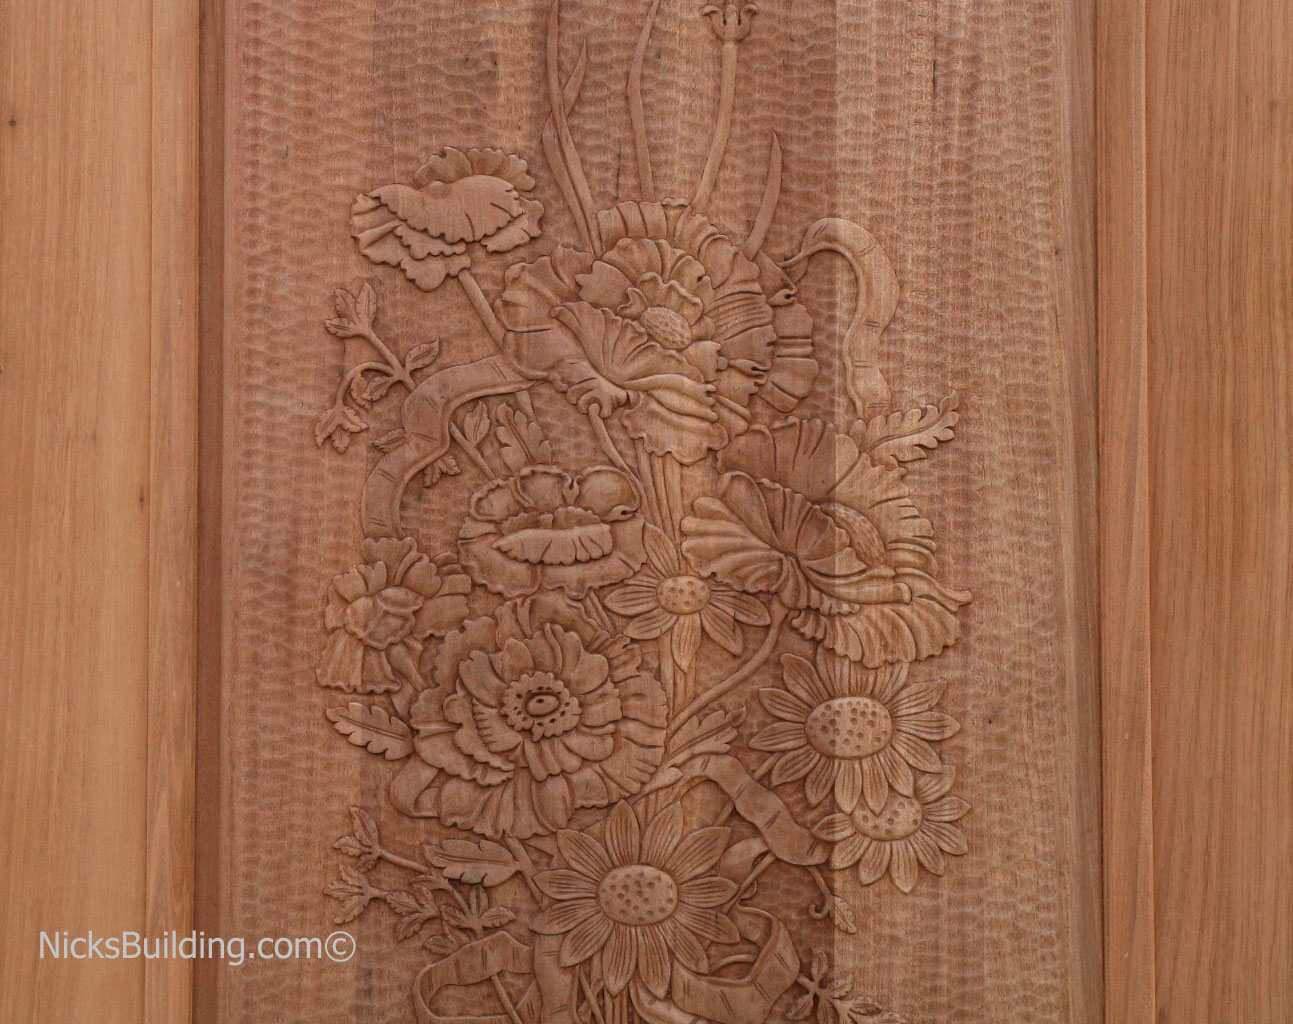 Carved Doors - Hand Carved Doors - Carved Mahogany Doors